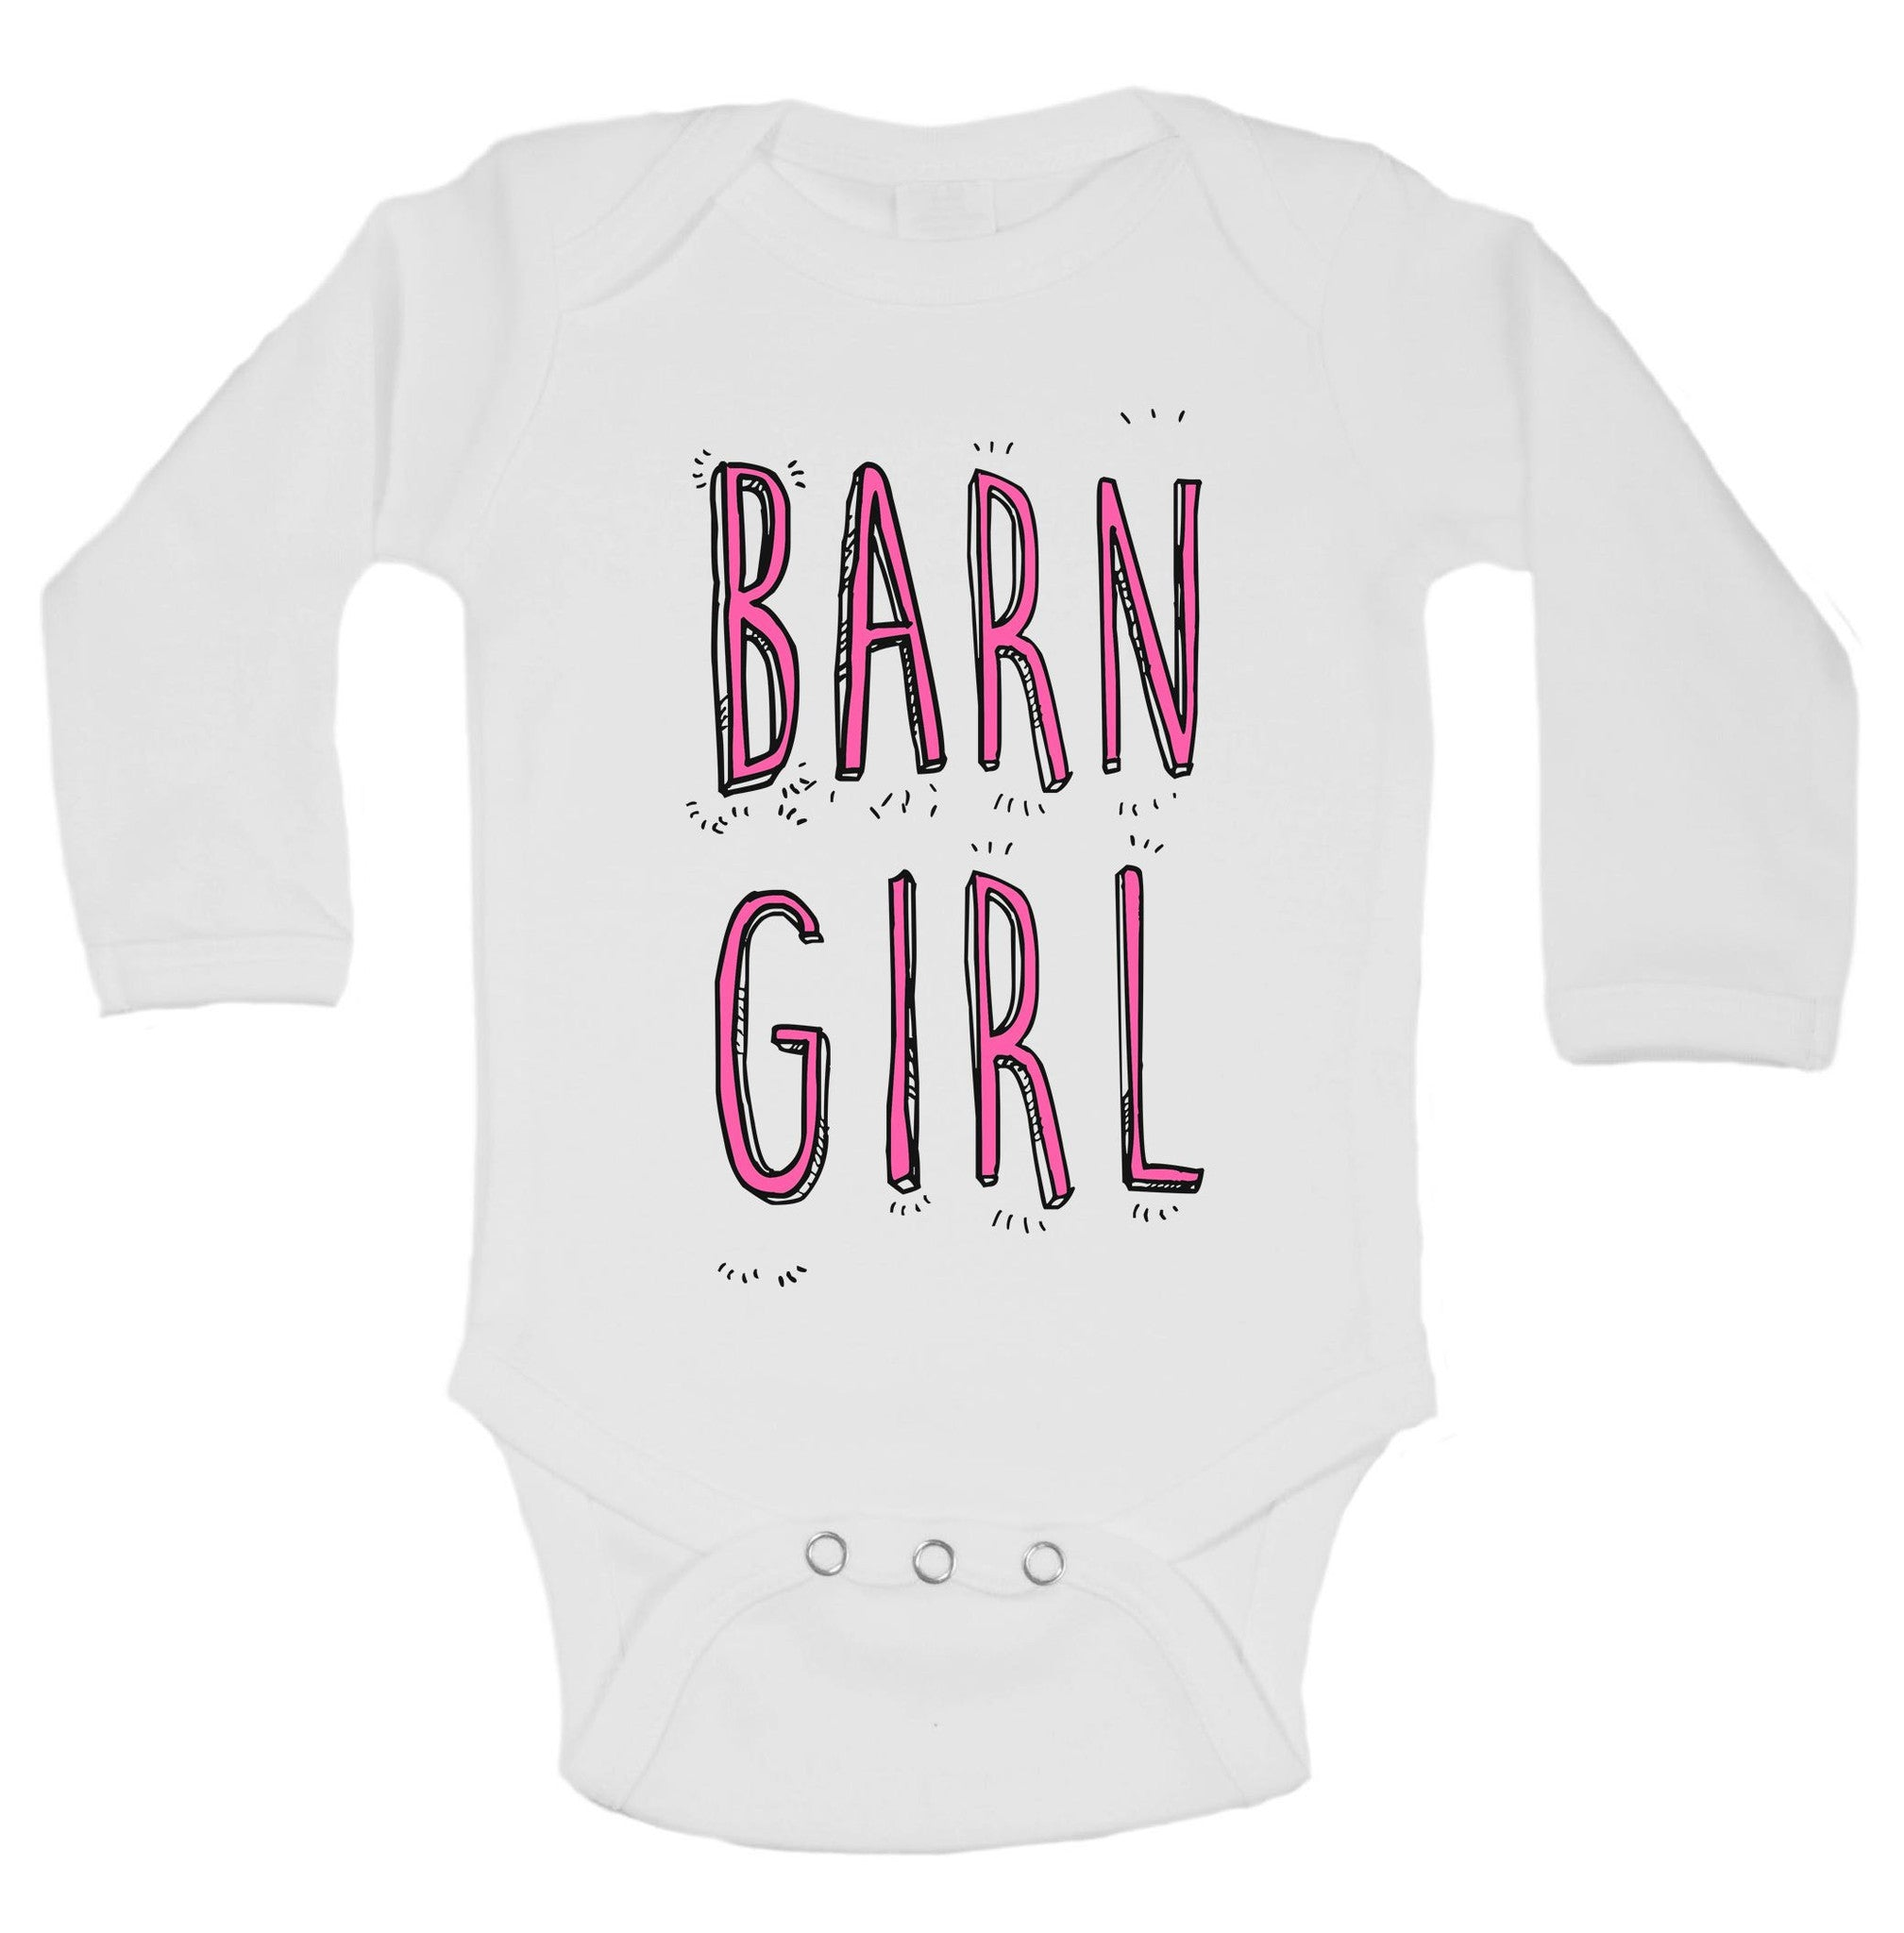 Barn Girl Funny Kids Onesie - B209 - Funny Shirts Tank Tops Burnouts and Triblends  - 1